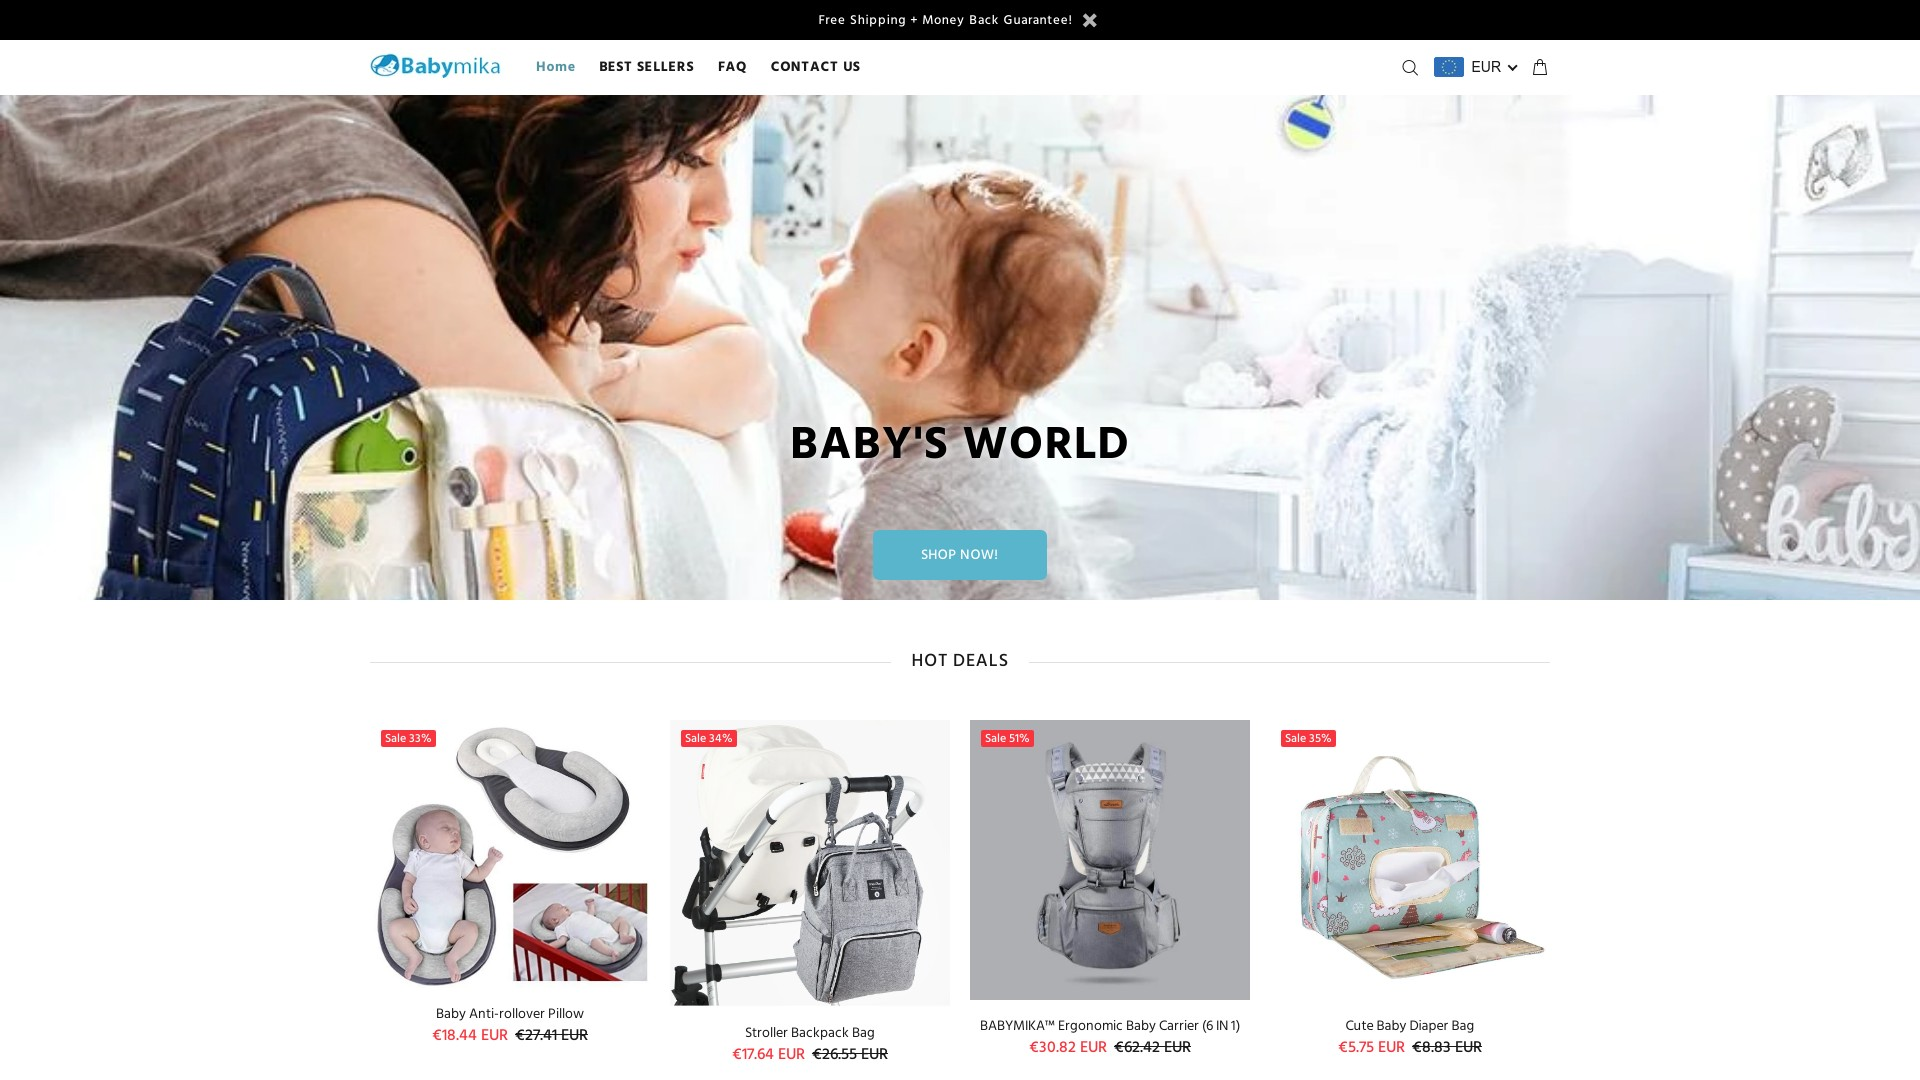 Is Babymika a Scam? Review of the Online Store